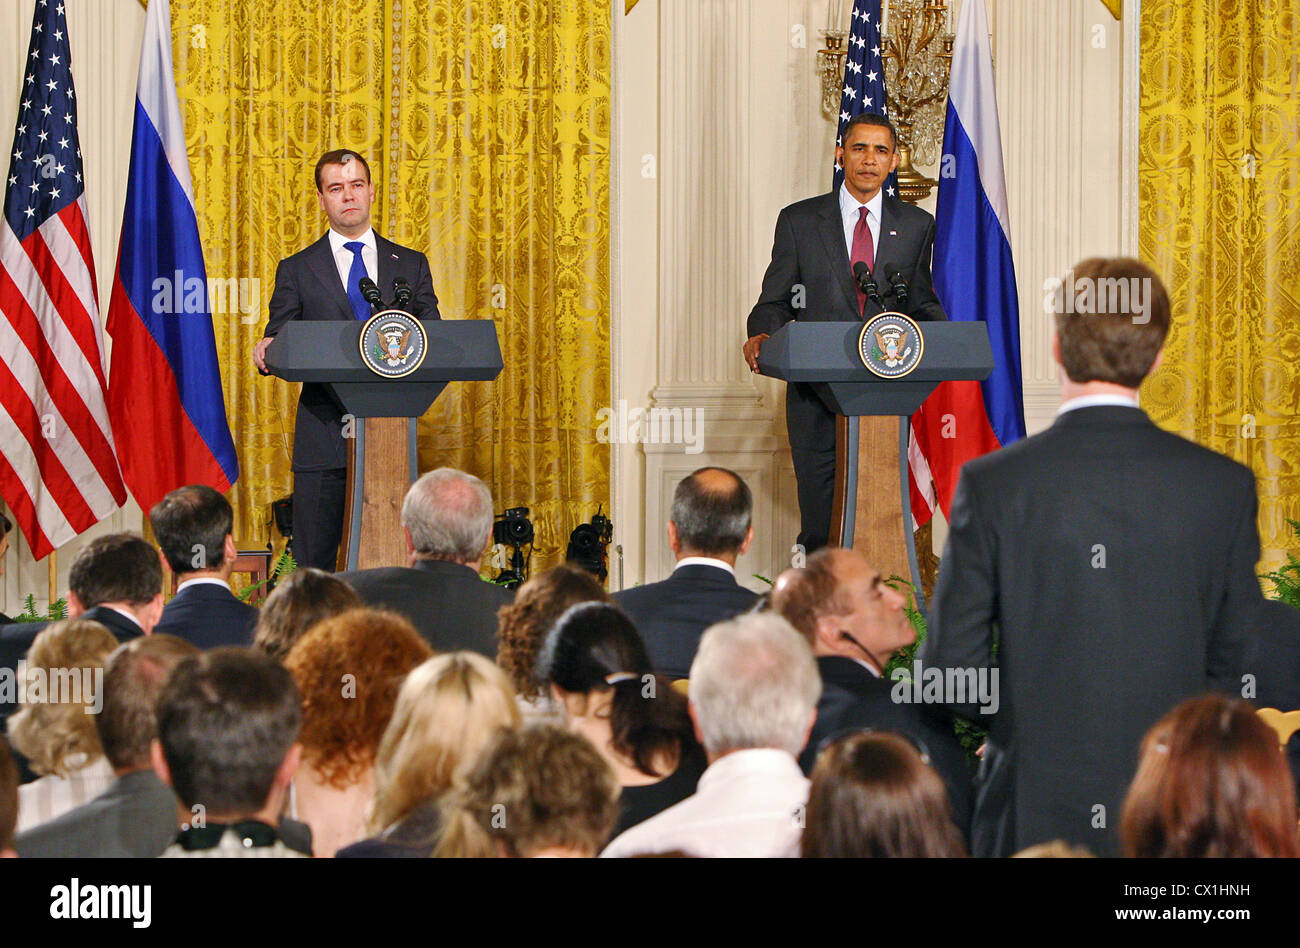 WASHINGTON, USA. JUNE 25, 2010. U.S. President Barack Obama and Russian President Dmitry Medvedev (L) give a joint Stock Photo